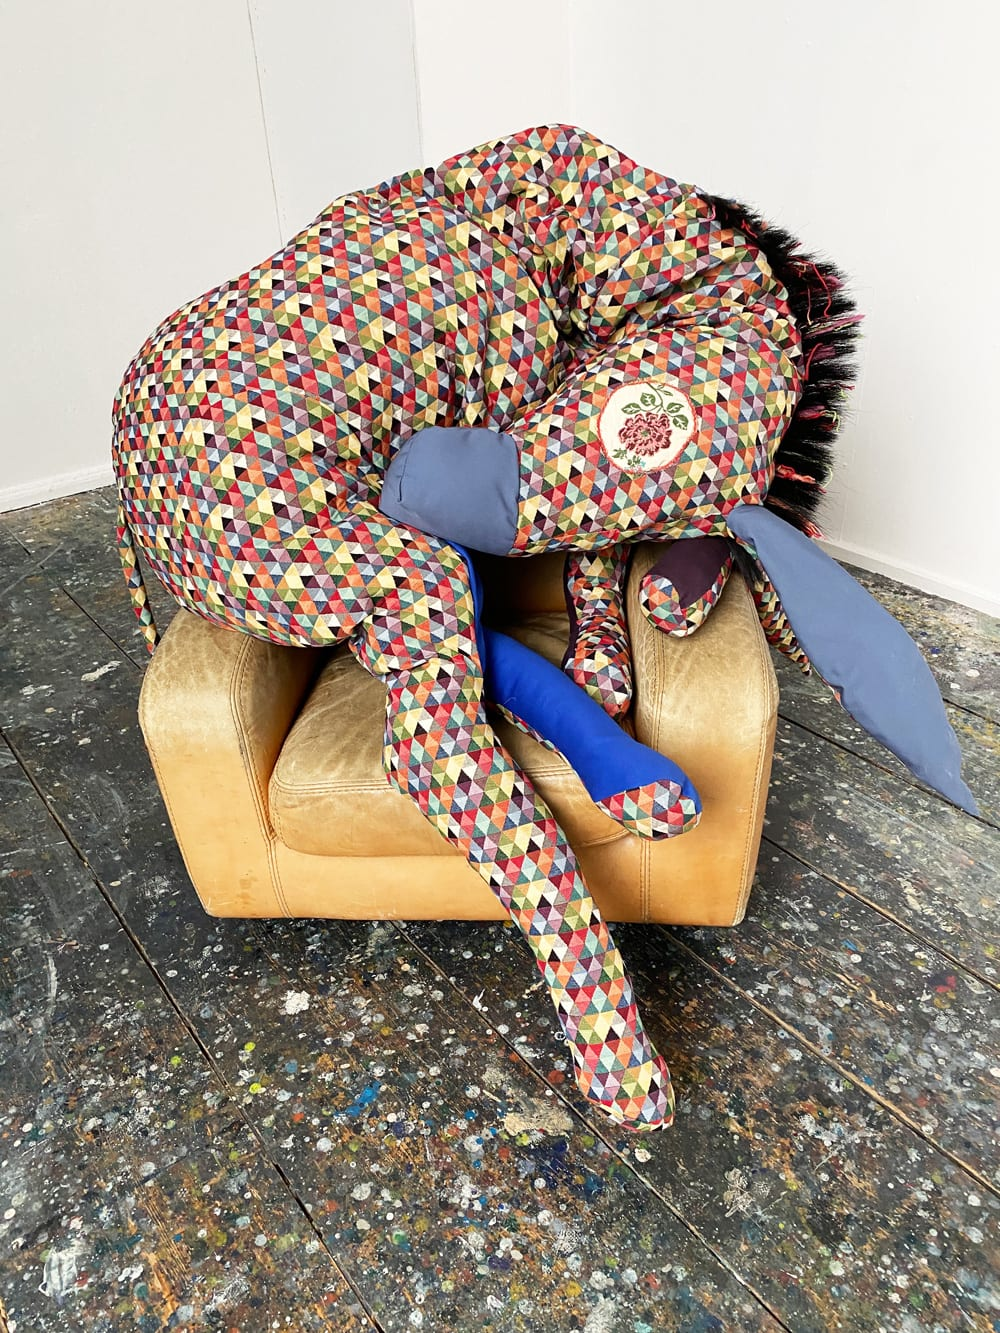 Diamond Donkey, 2020, Textile, Cotton, Wool, Horsehair, Zipper, ca. 250 x 150 x 50 cm, courtesy of Hilgemann Art & the artist / Foto: obs / haebmau.ATELIER / Stephen Wilks